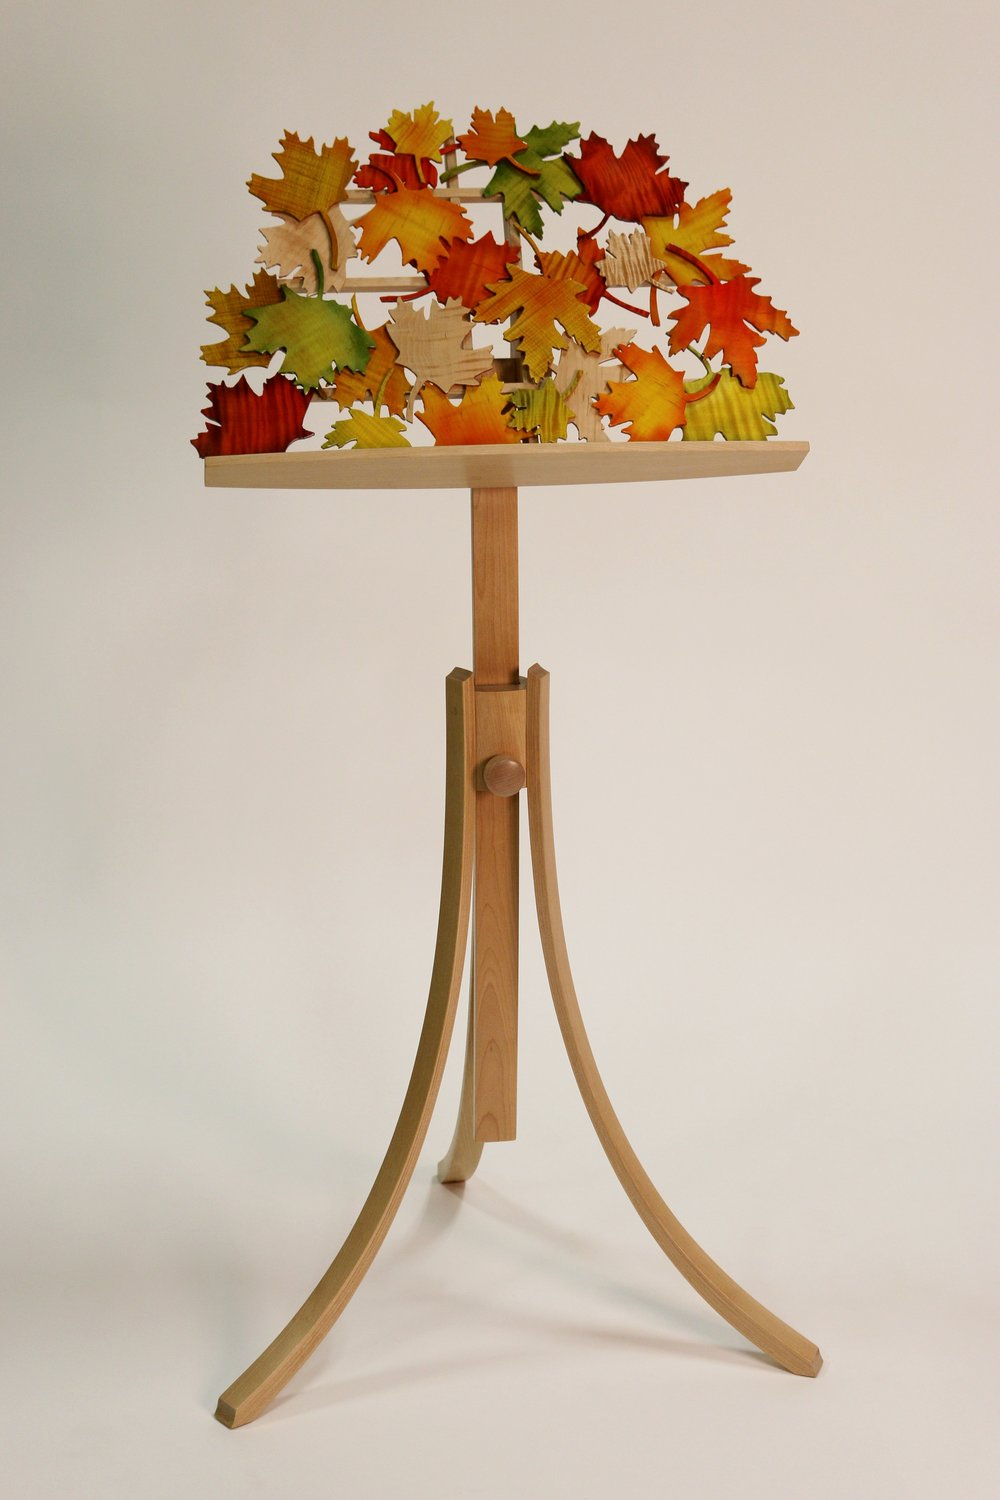 Autumn Leaves - Birch Stand